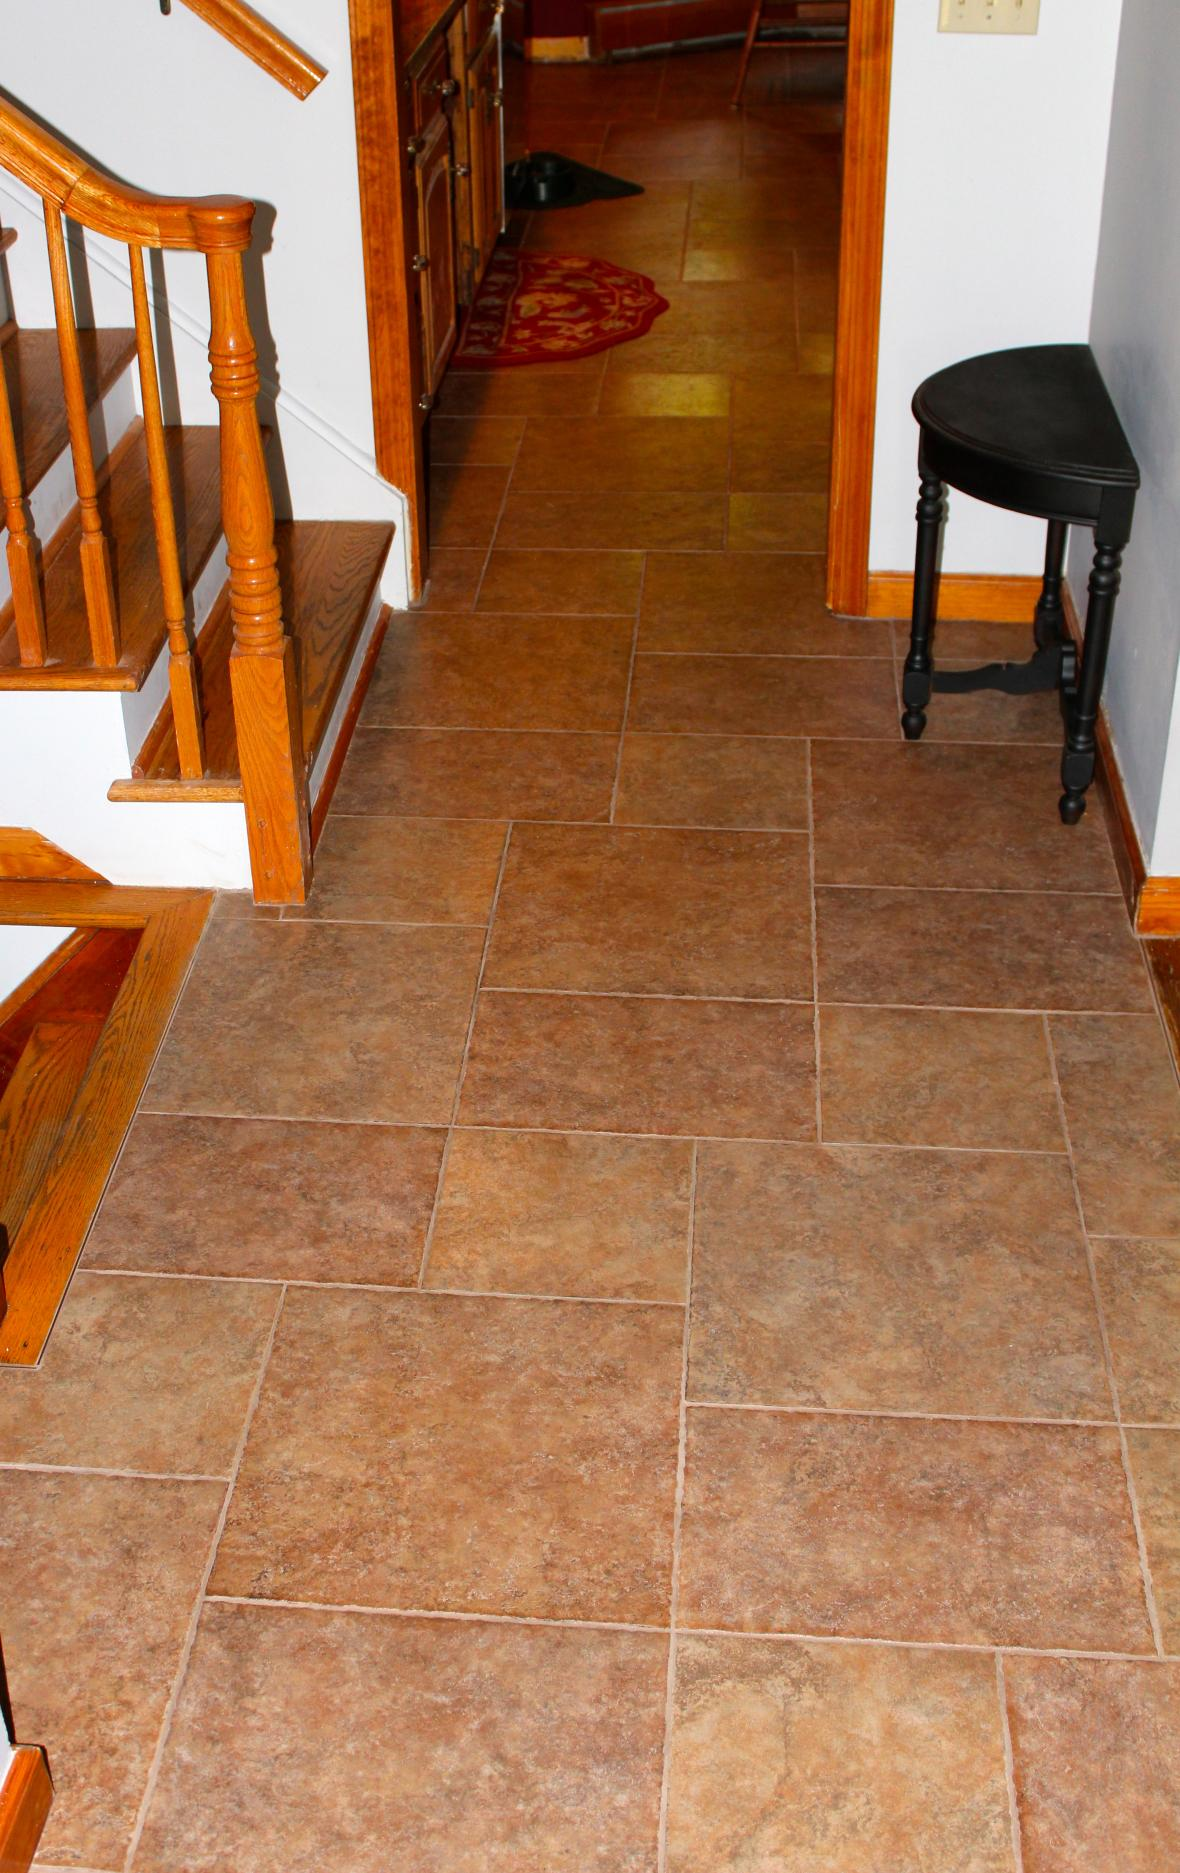 Best Flooring In Kitchen Best Kitchen Floor Cleaner How To Clean Grout In Tile Floors